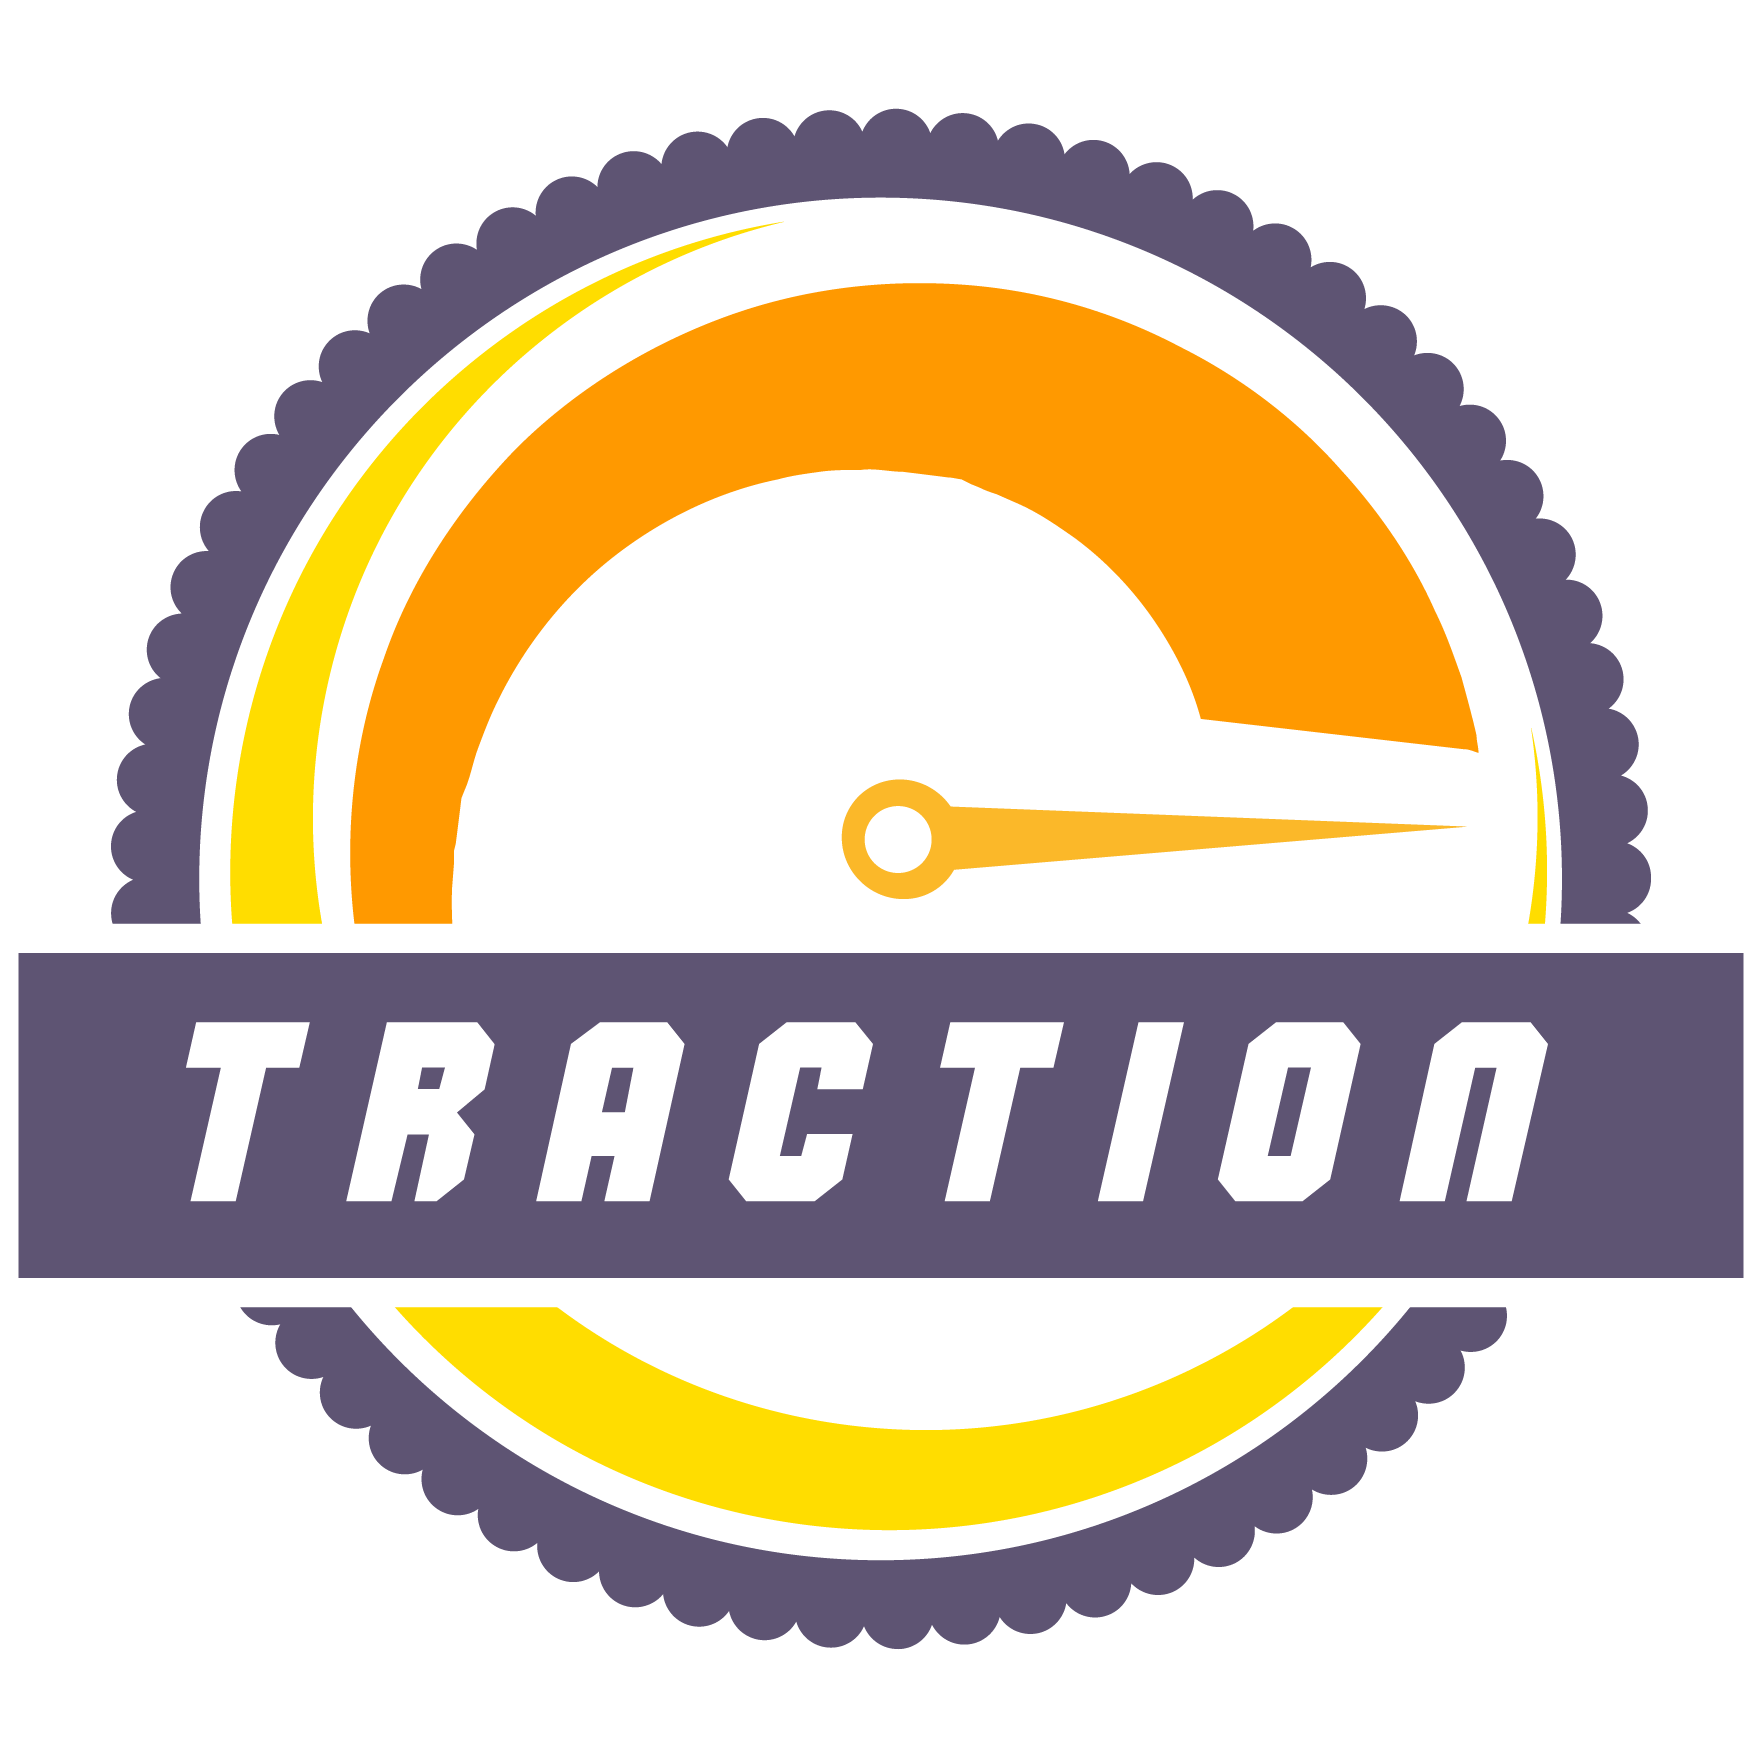 Traction1.png